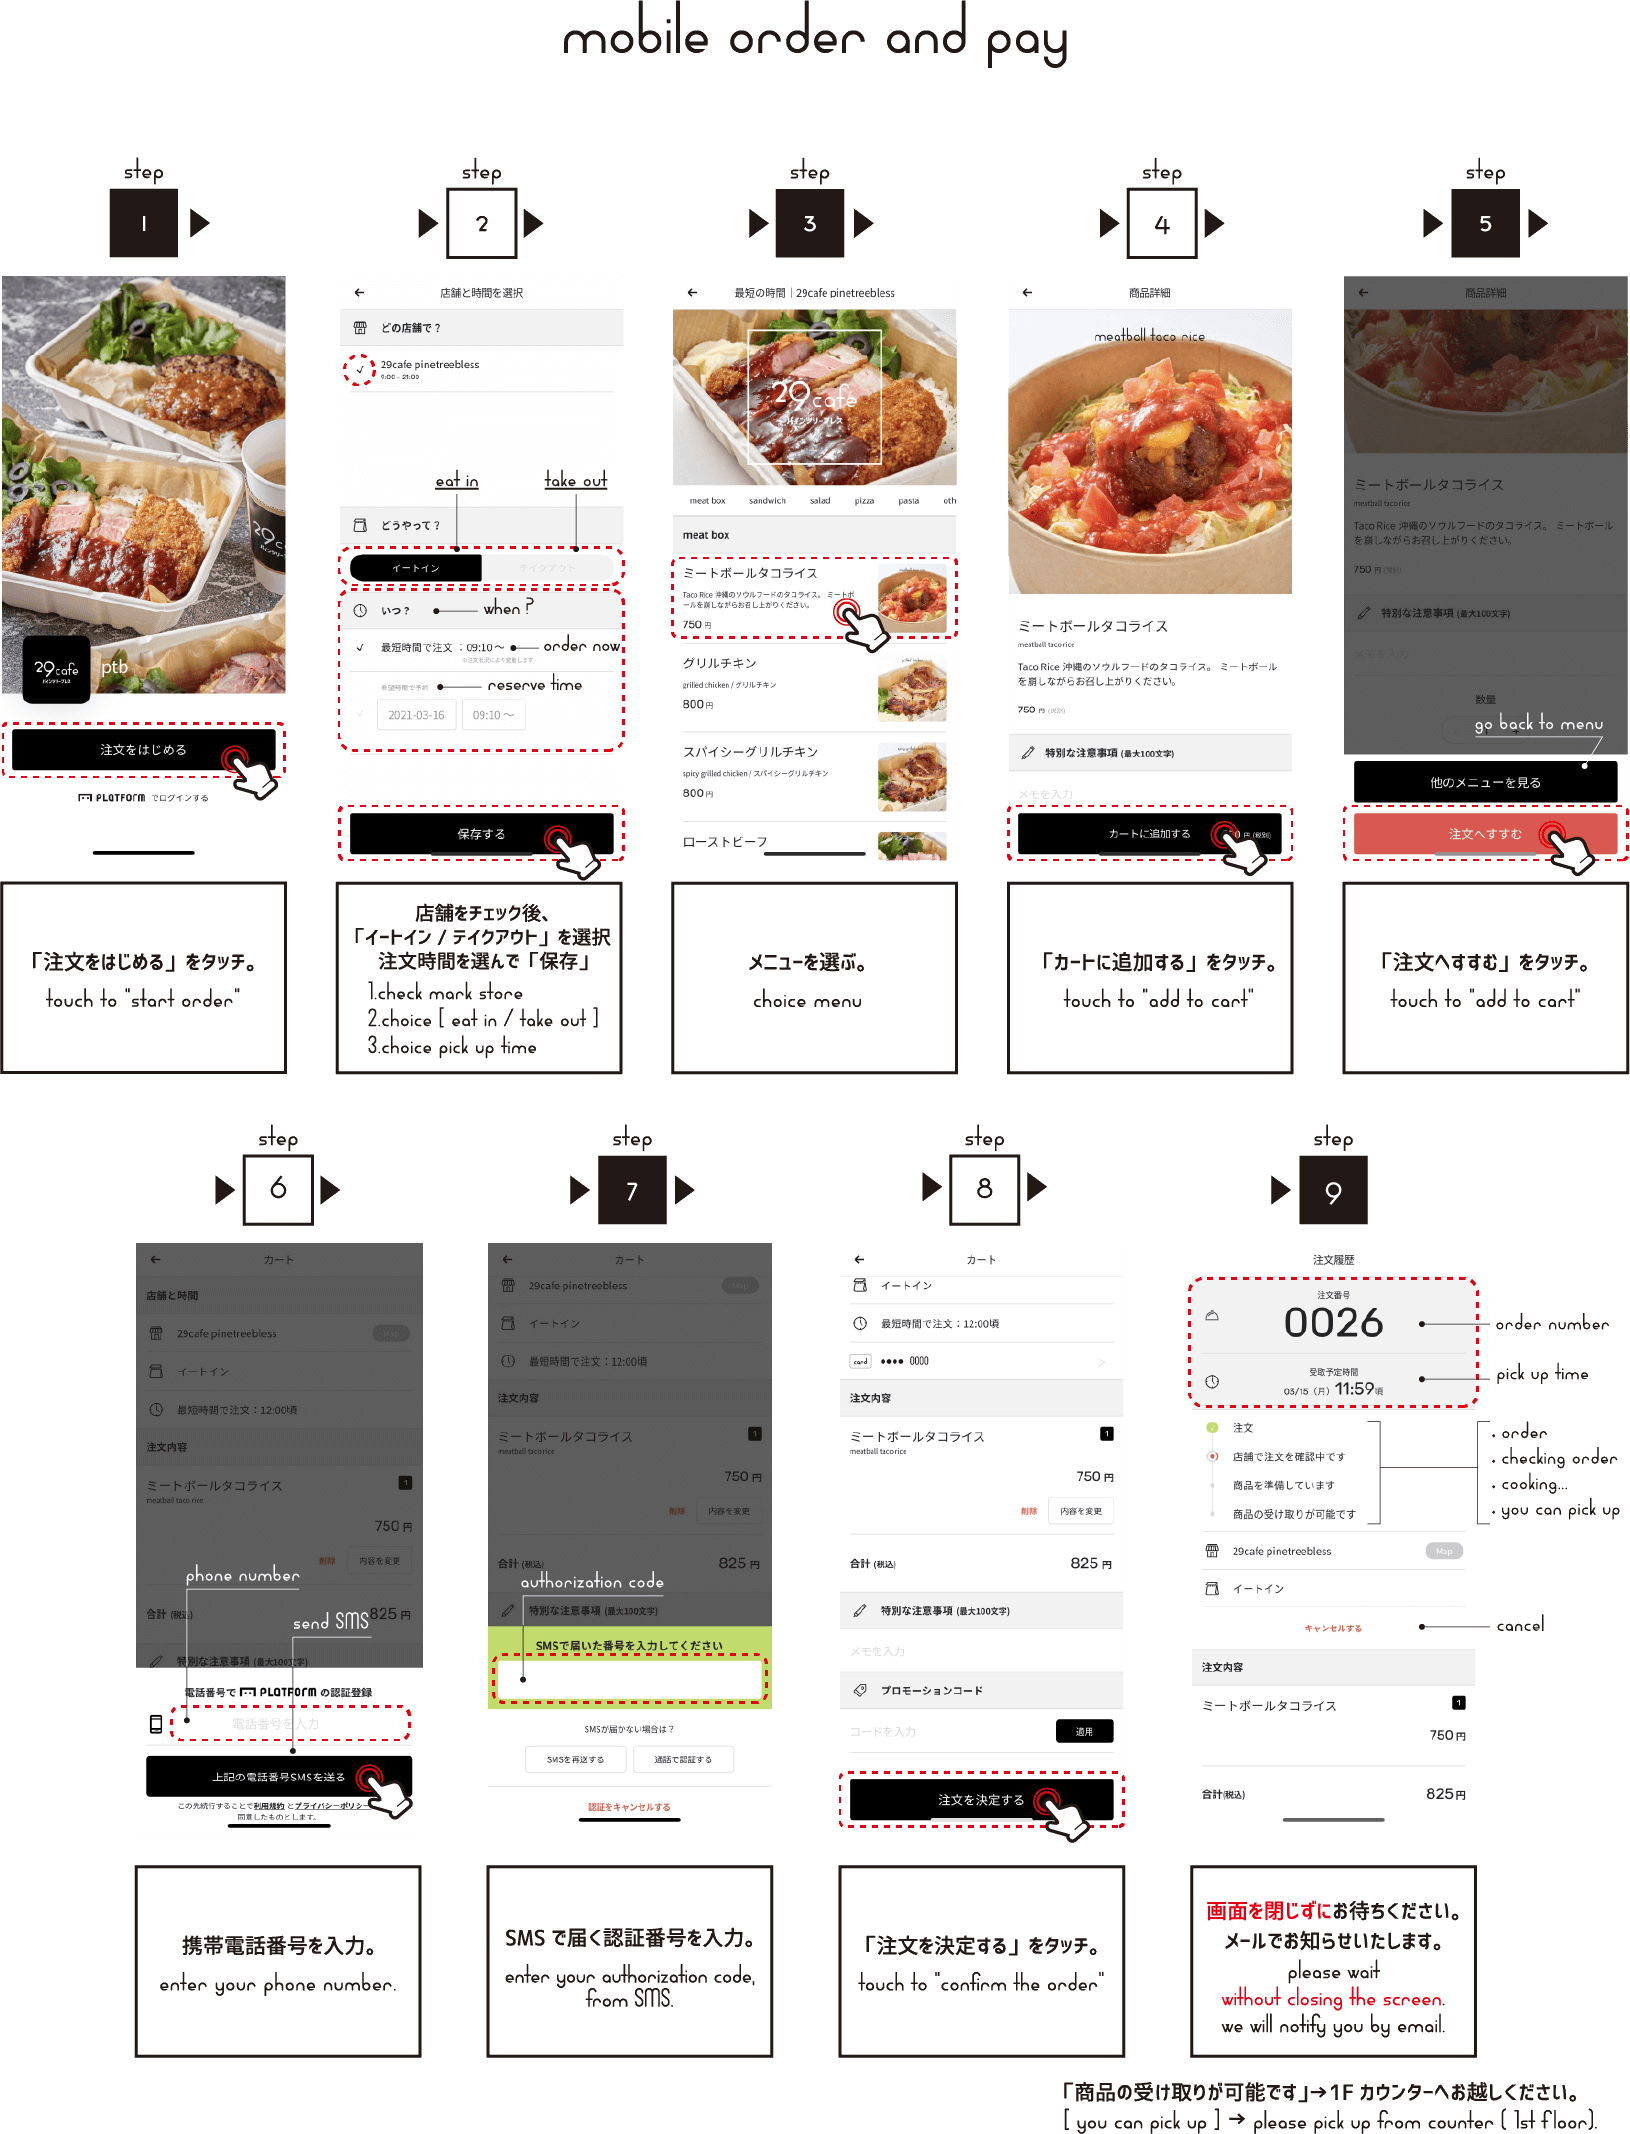 mobile order and pay